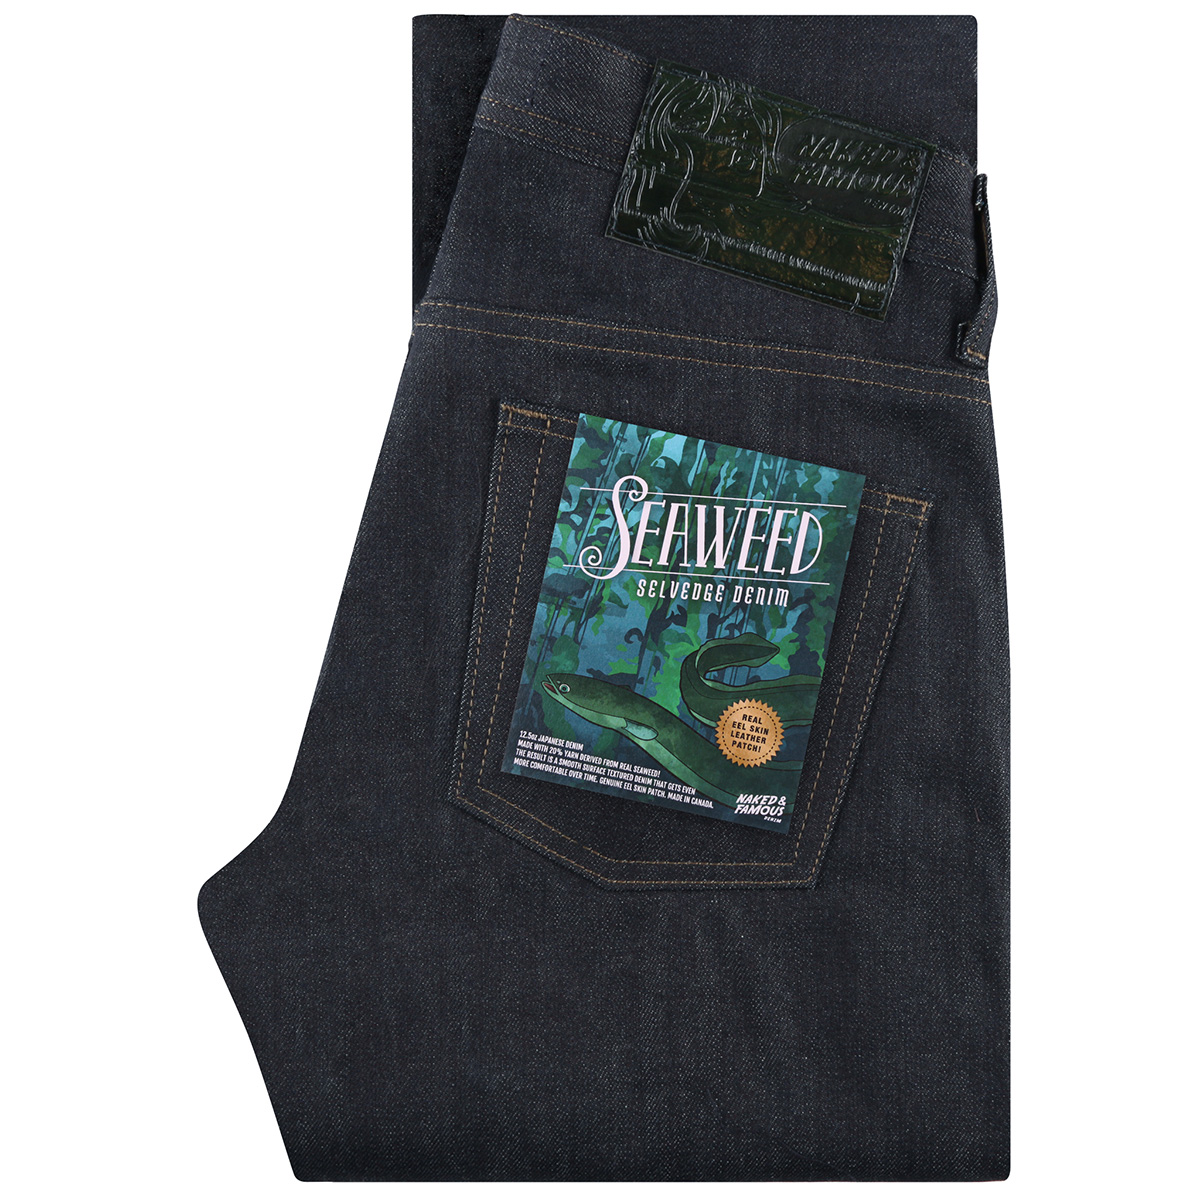 SEAWEED selvedge - Super Guy / Weird Guy / Easy Guy